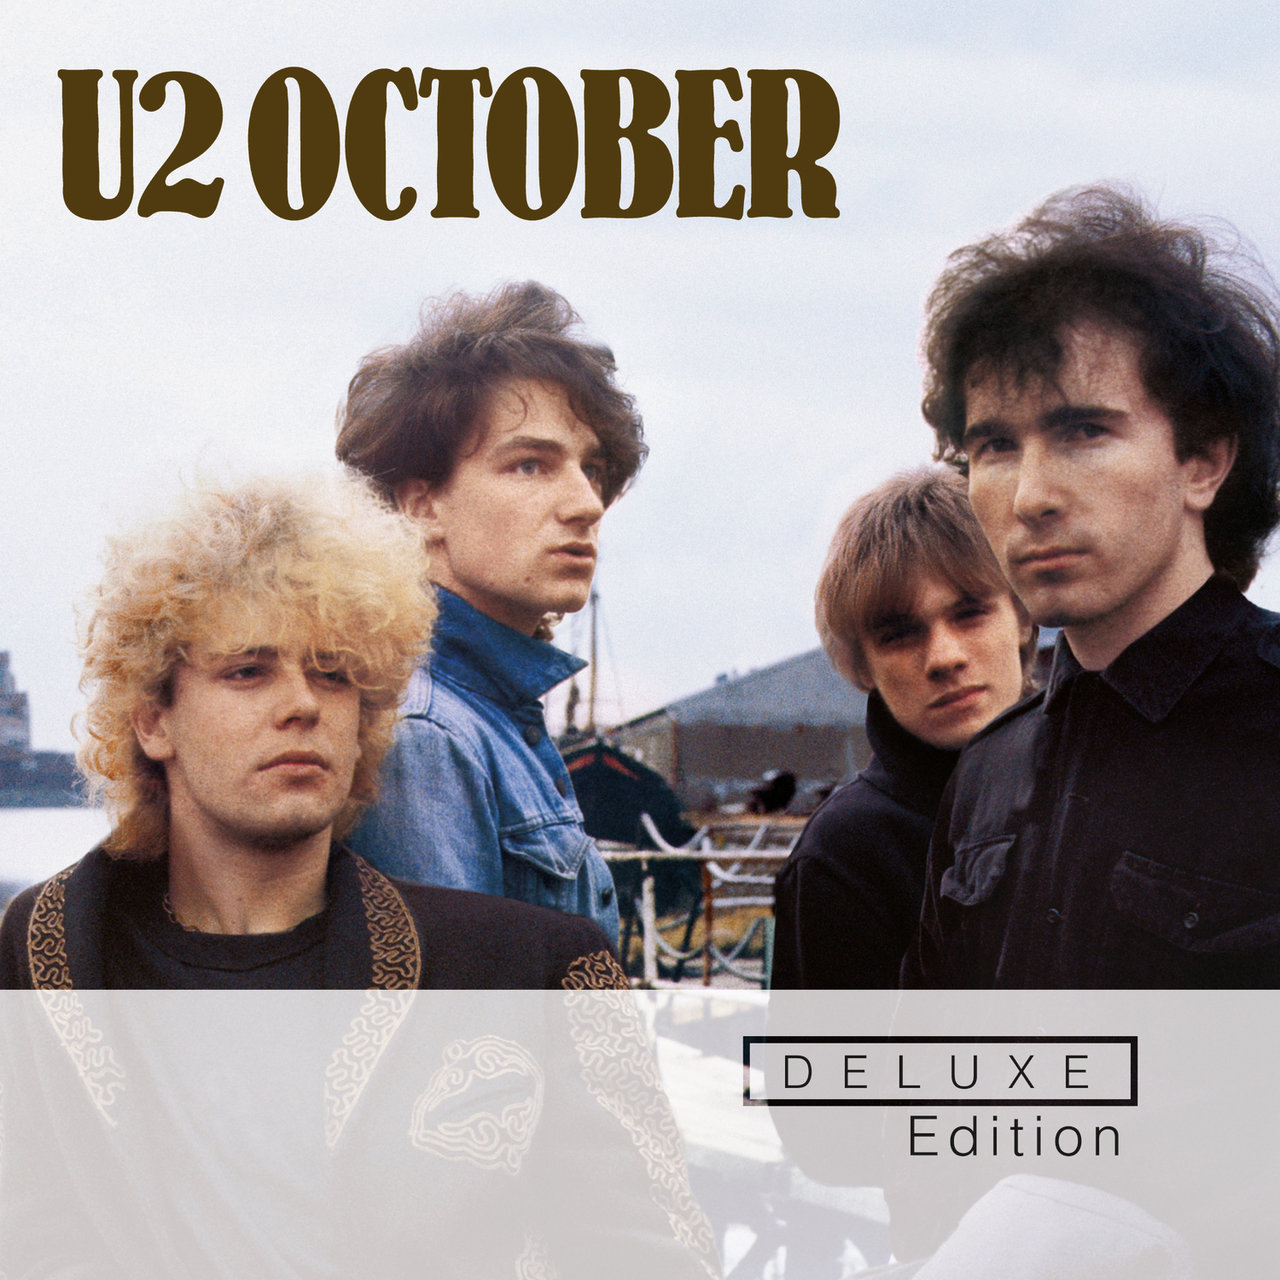 October (Remastered Deluxe Edition)